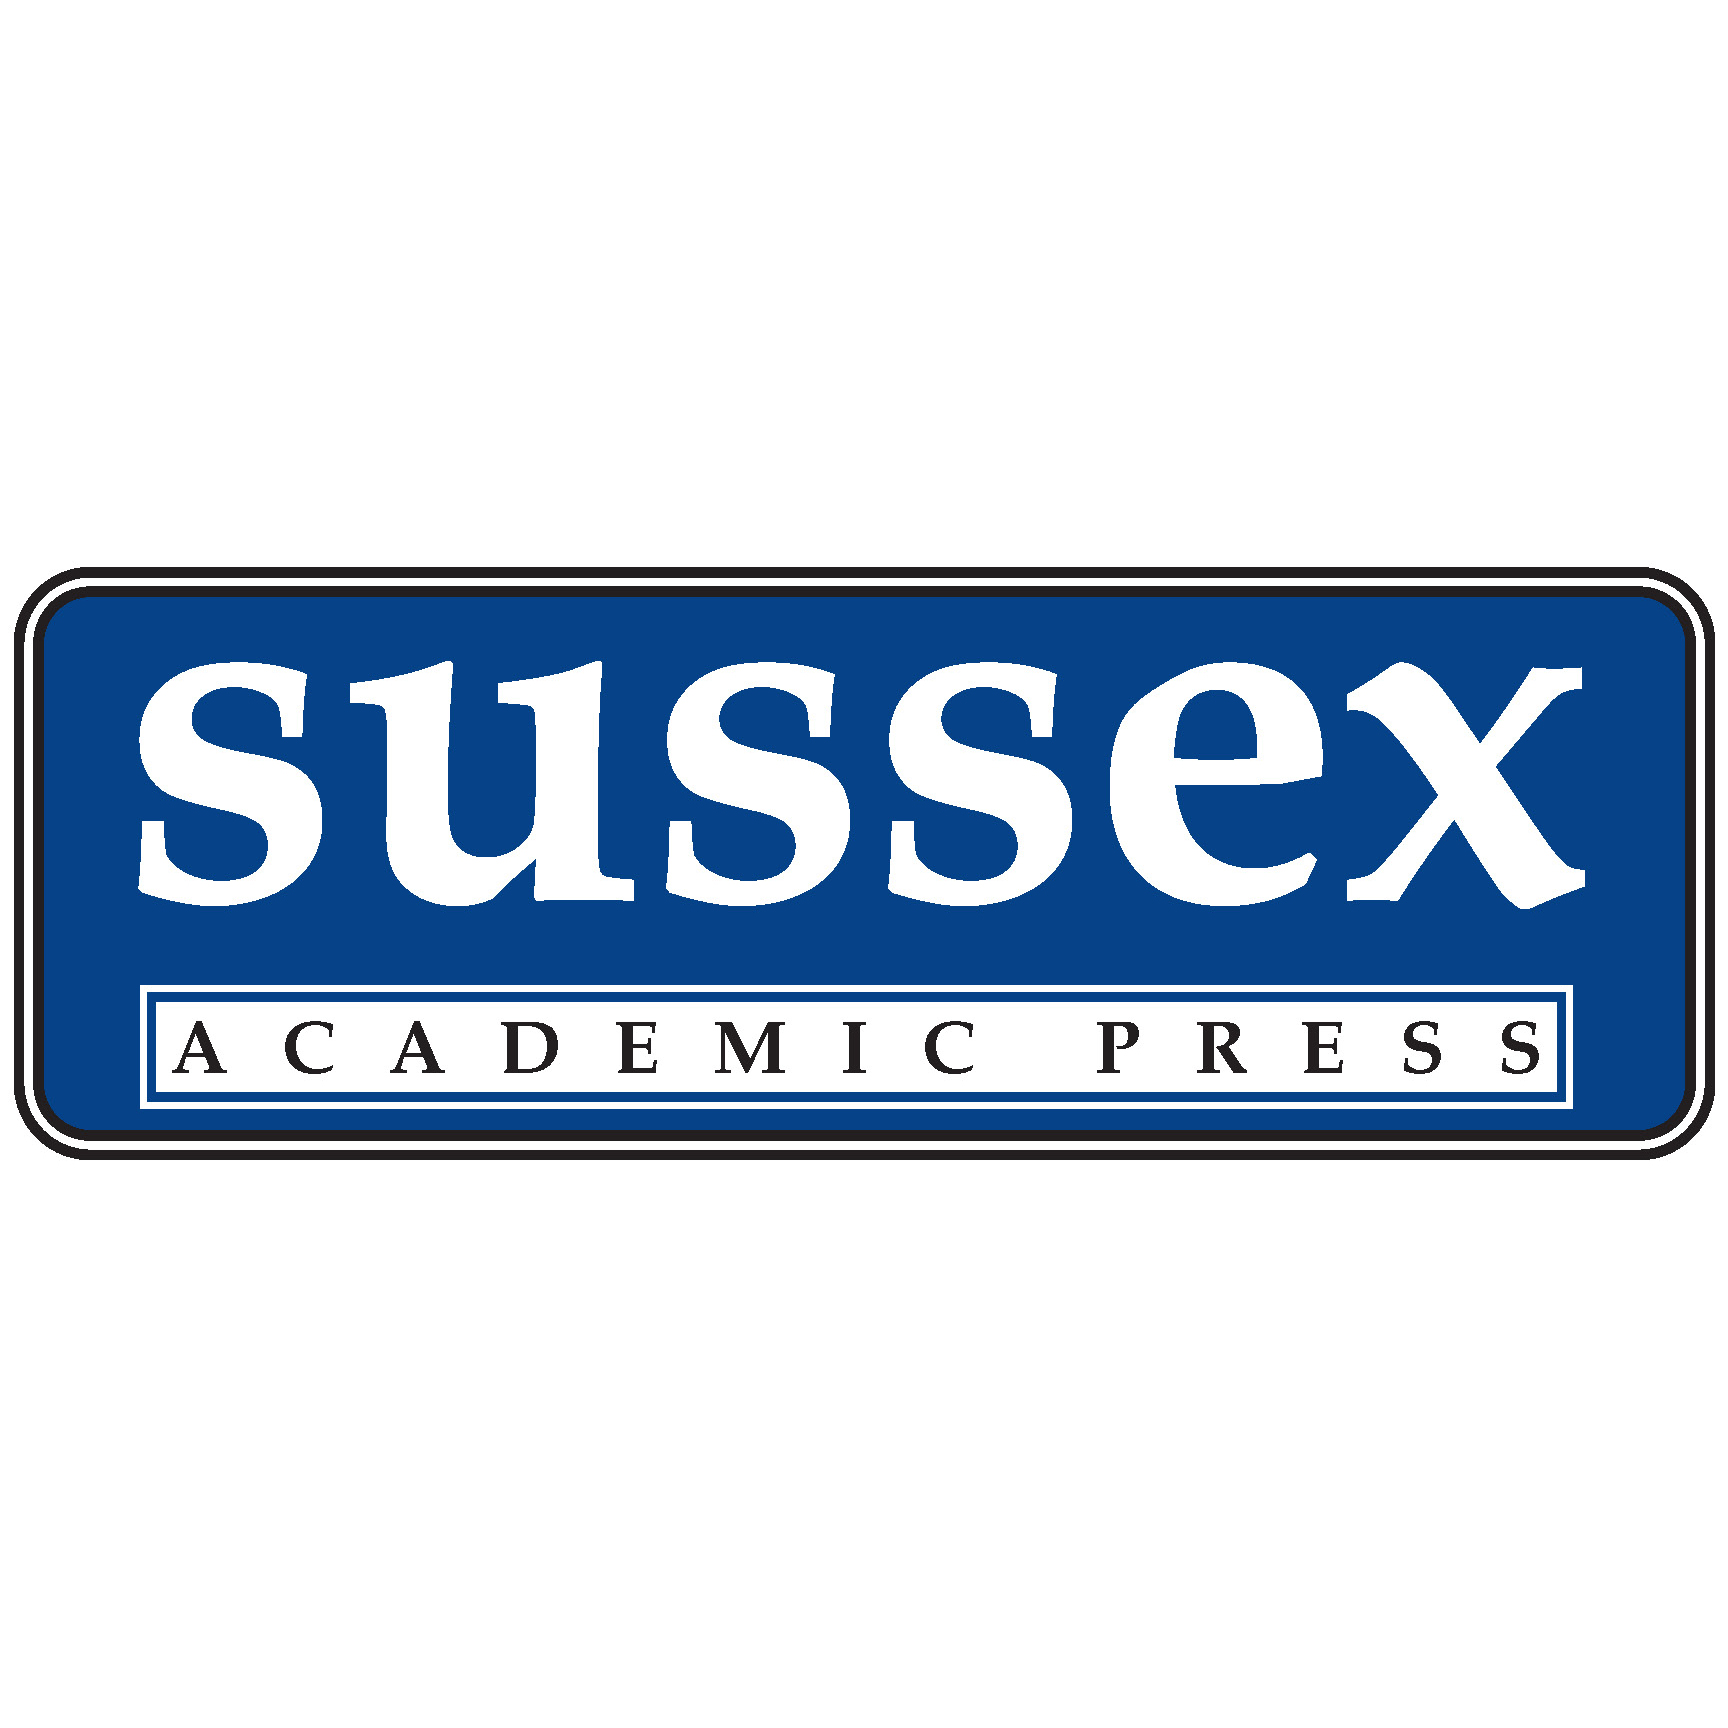 Sussex Academic Press